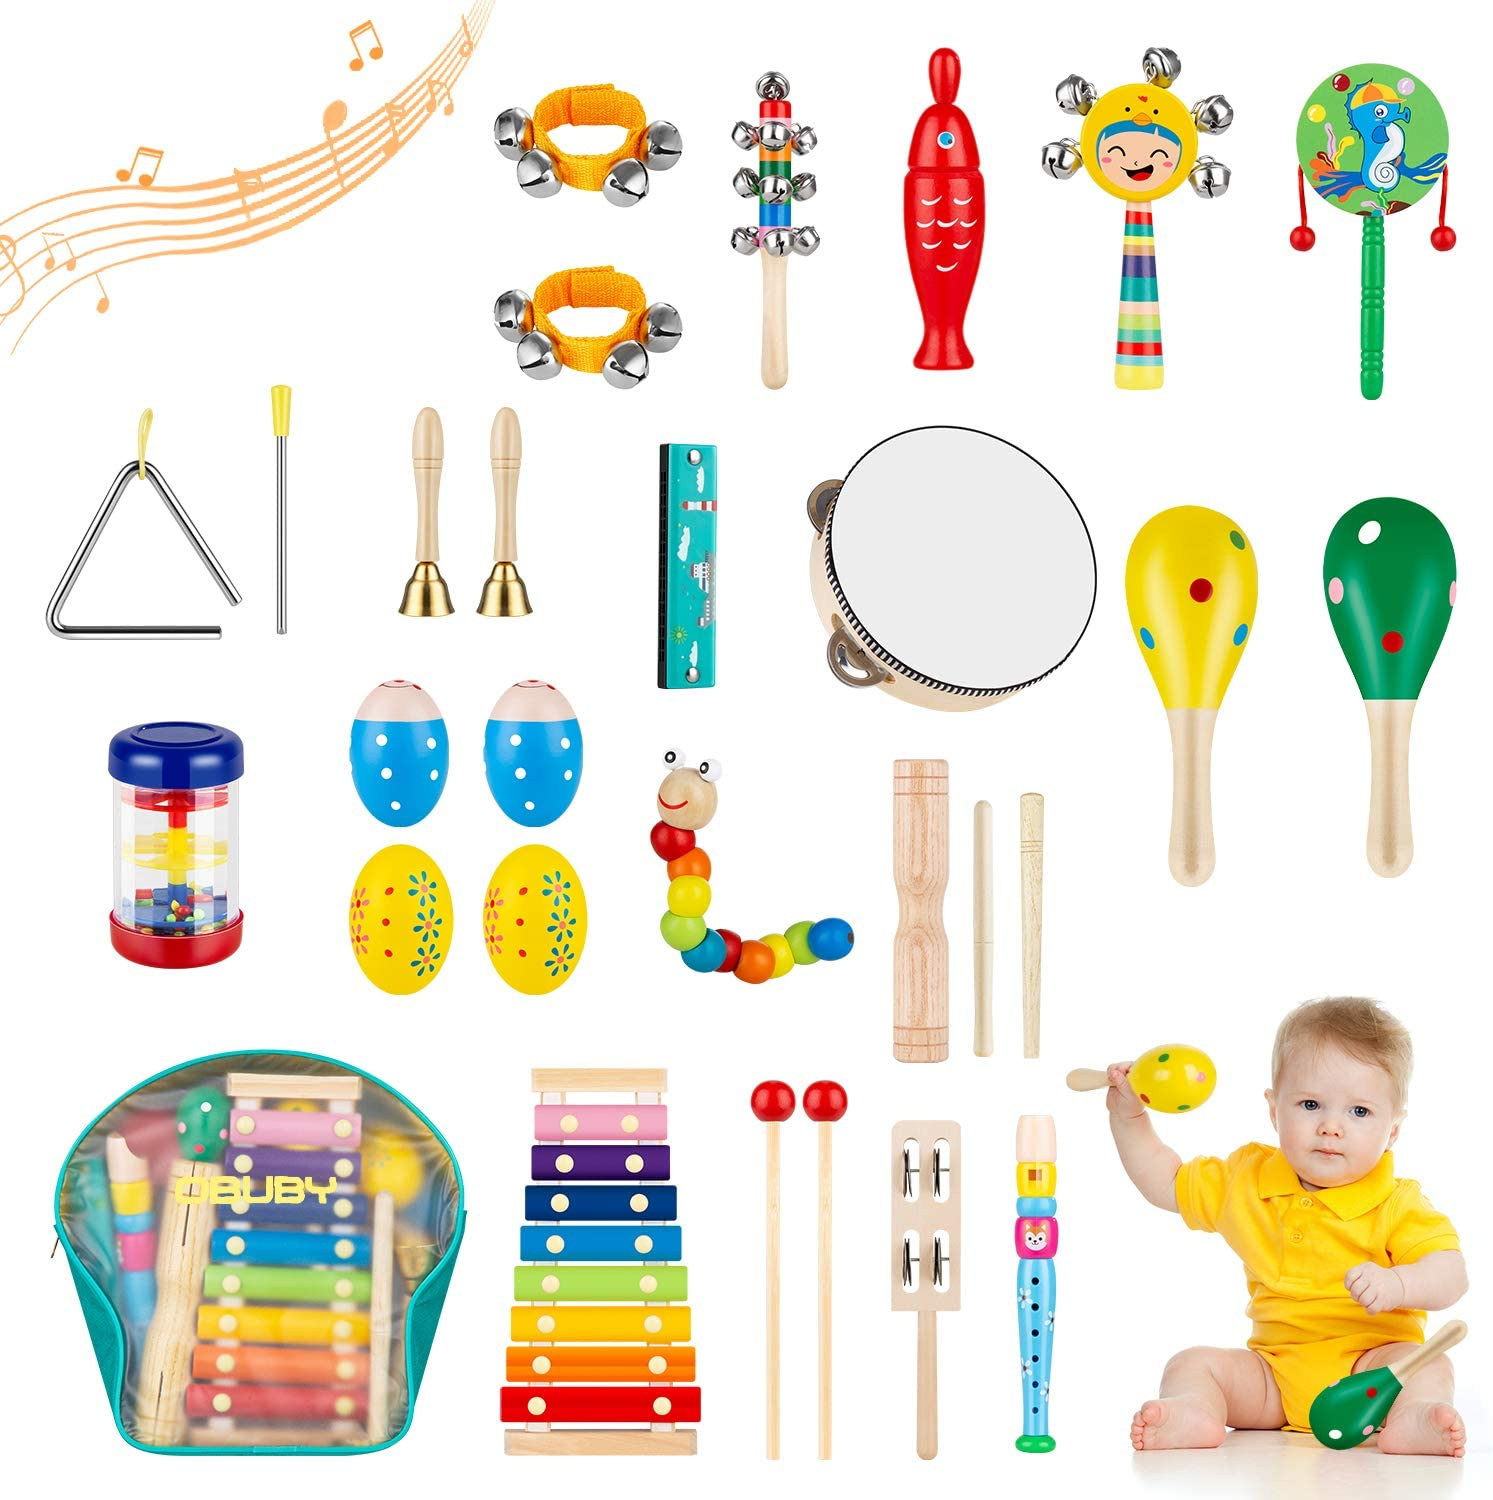 Obuby Toddler Musical Instruments Sets Wooden Percussion Instruments Toy for Kids Preschool Educational Wood Toys with Storage Bag for Kid Baby Babies Children Boys and Girls: Toys & Games